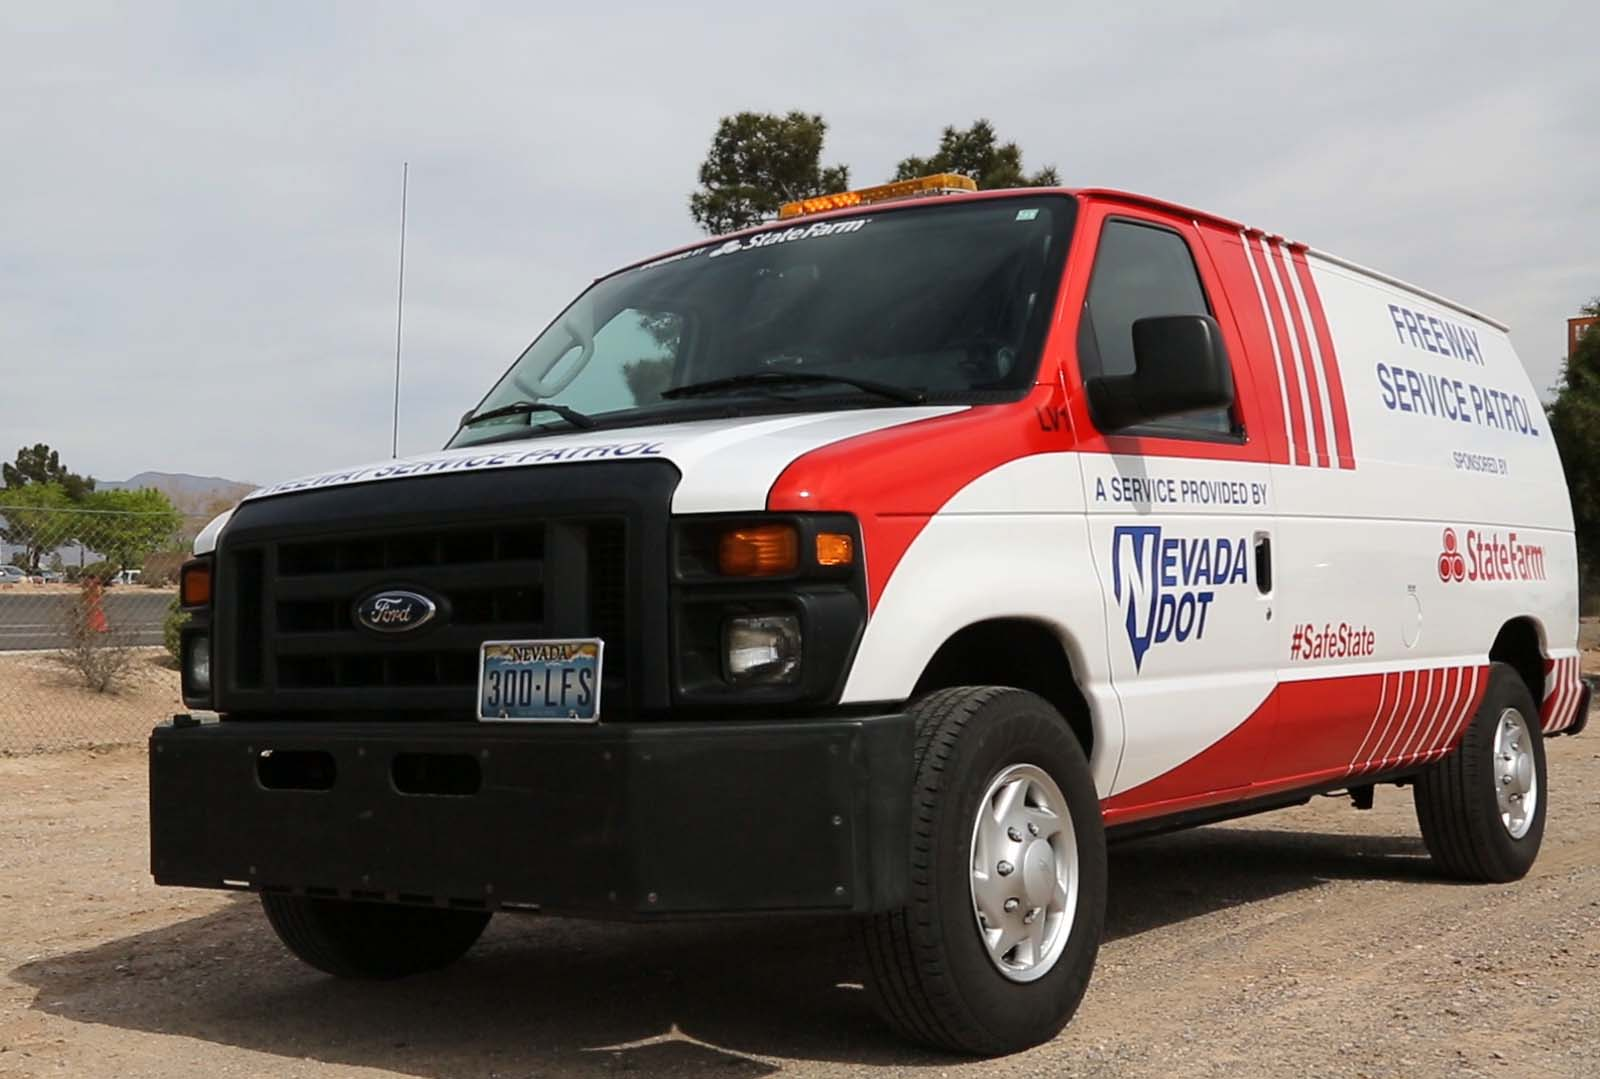 A photo of the Freeway Service Patrol Van, sponsored by State Farm